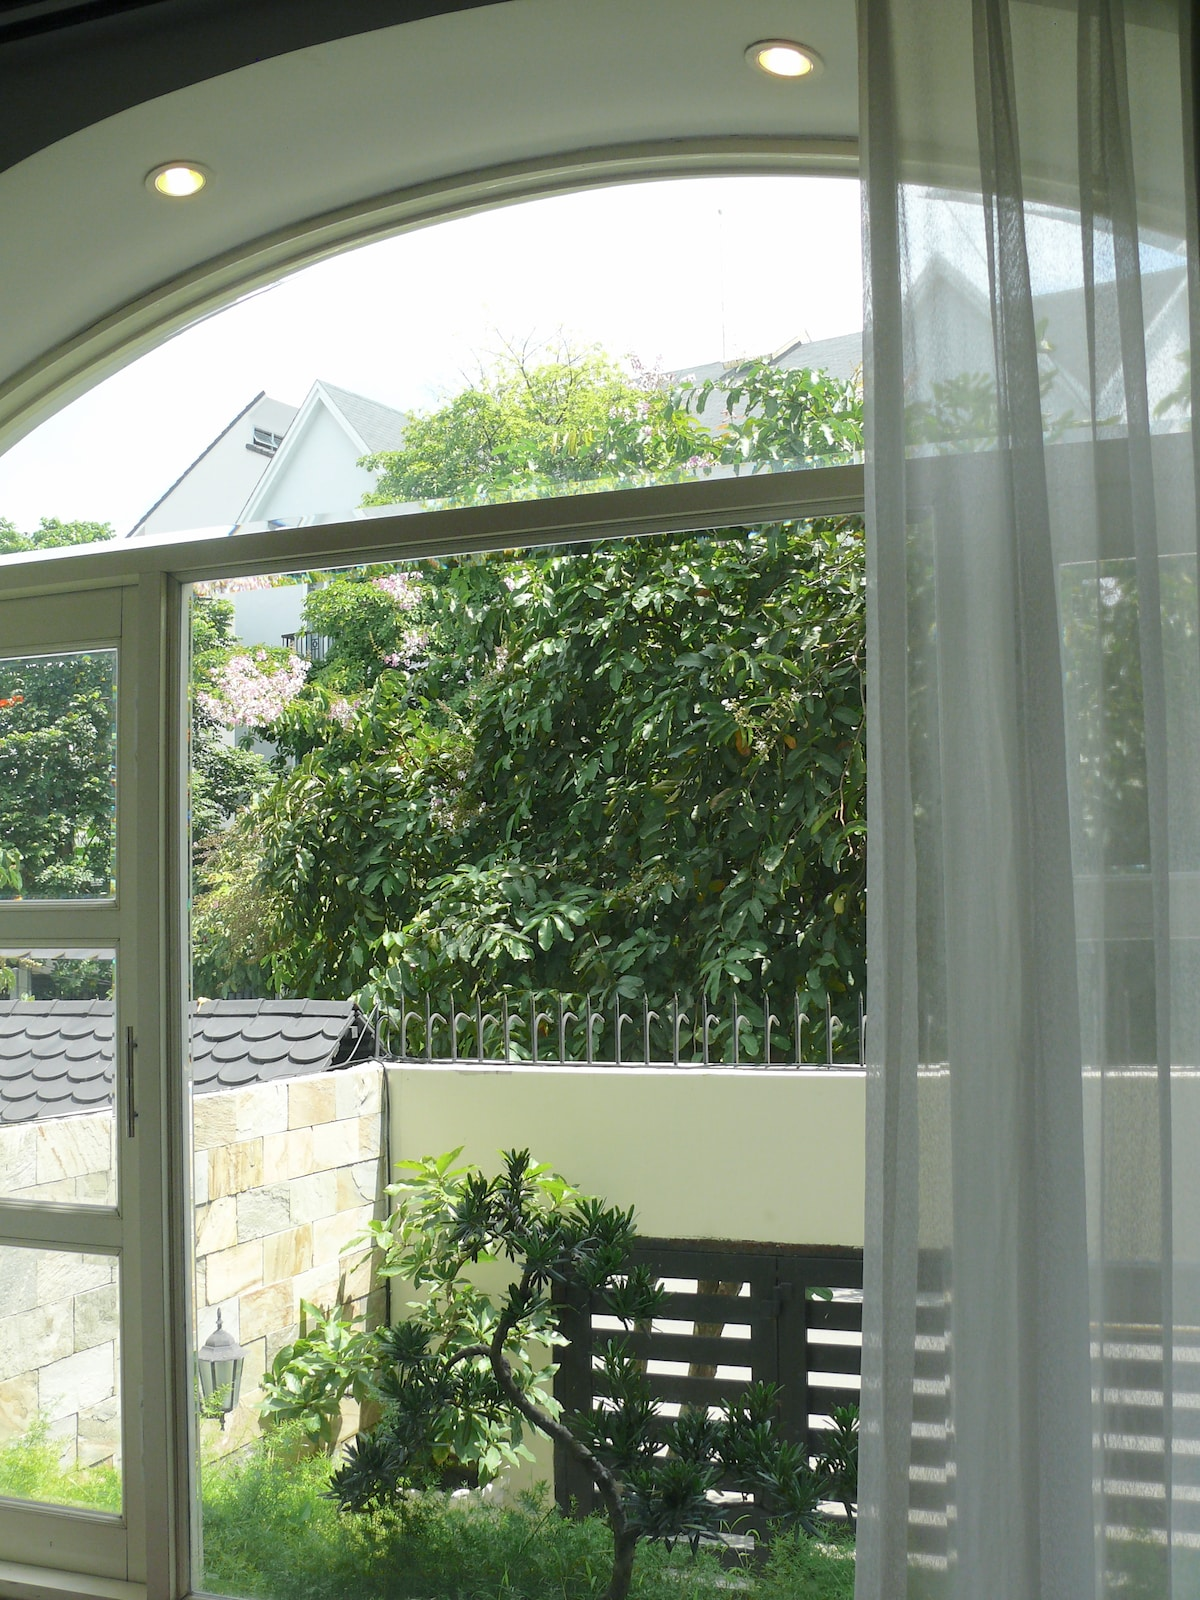 The window during the day time is fill with green and bird chirping